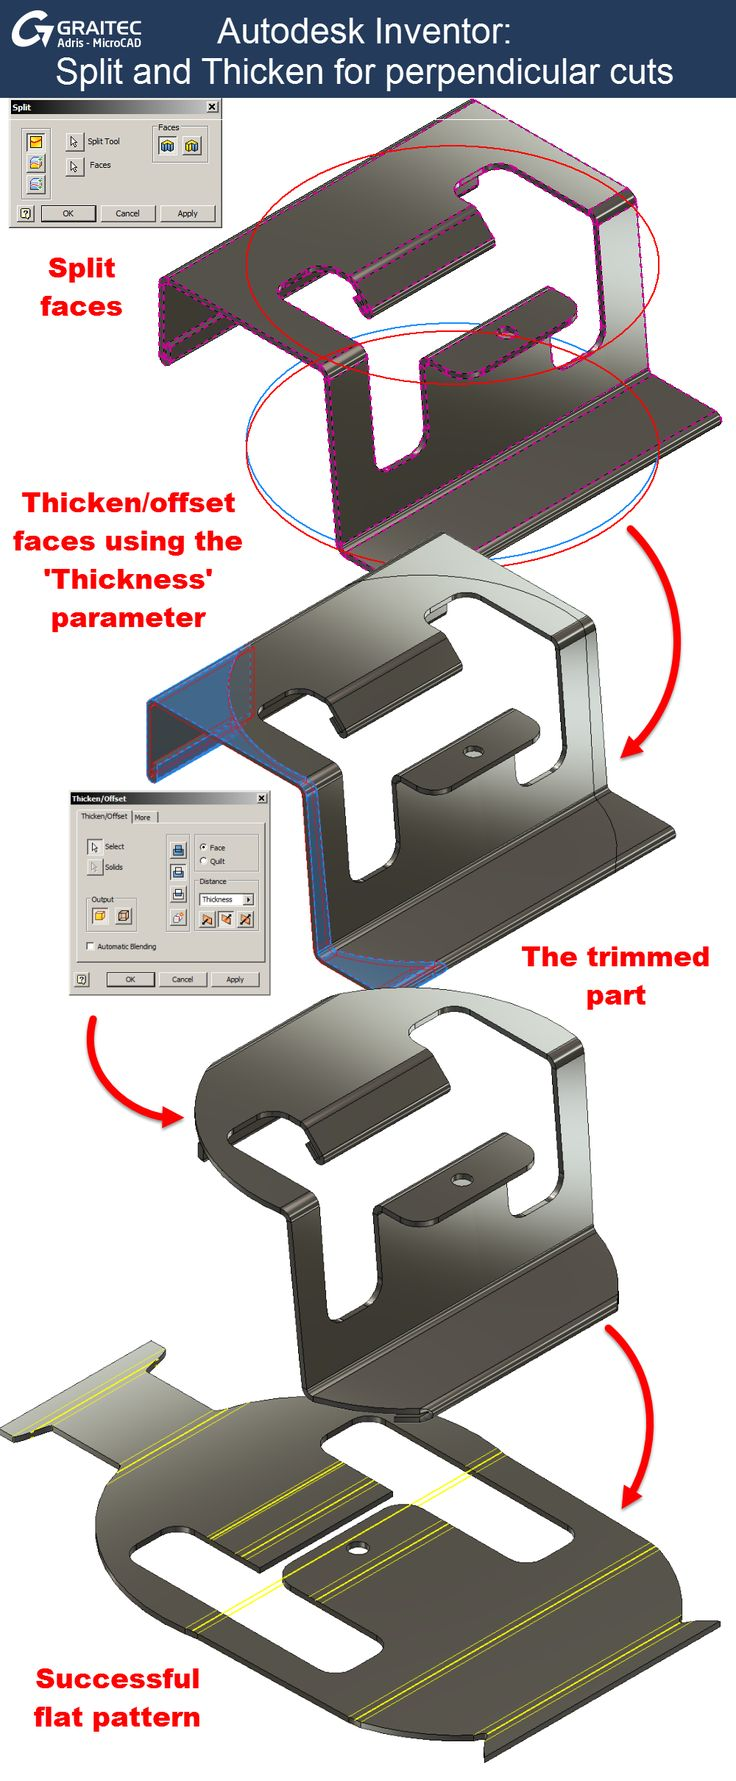 Graitec Autodesk Inventor Split and thicken for perpendicular cuts